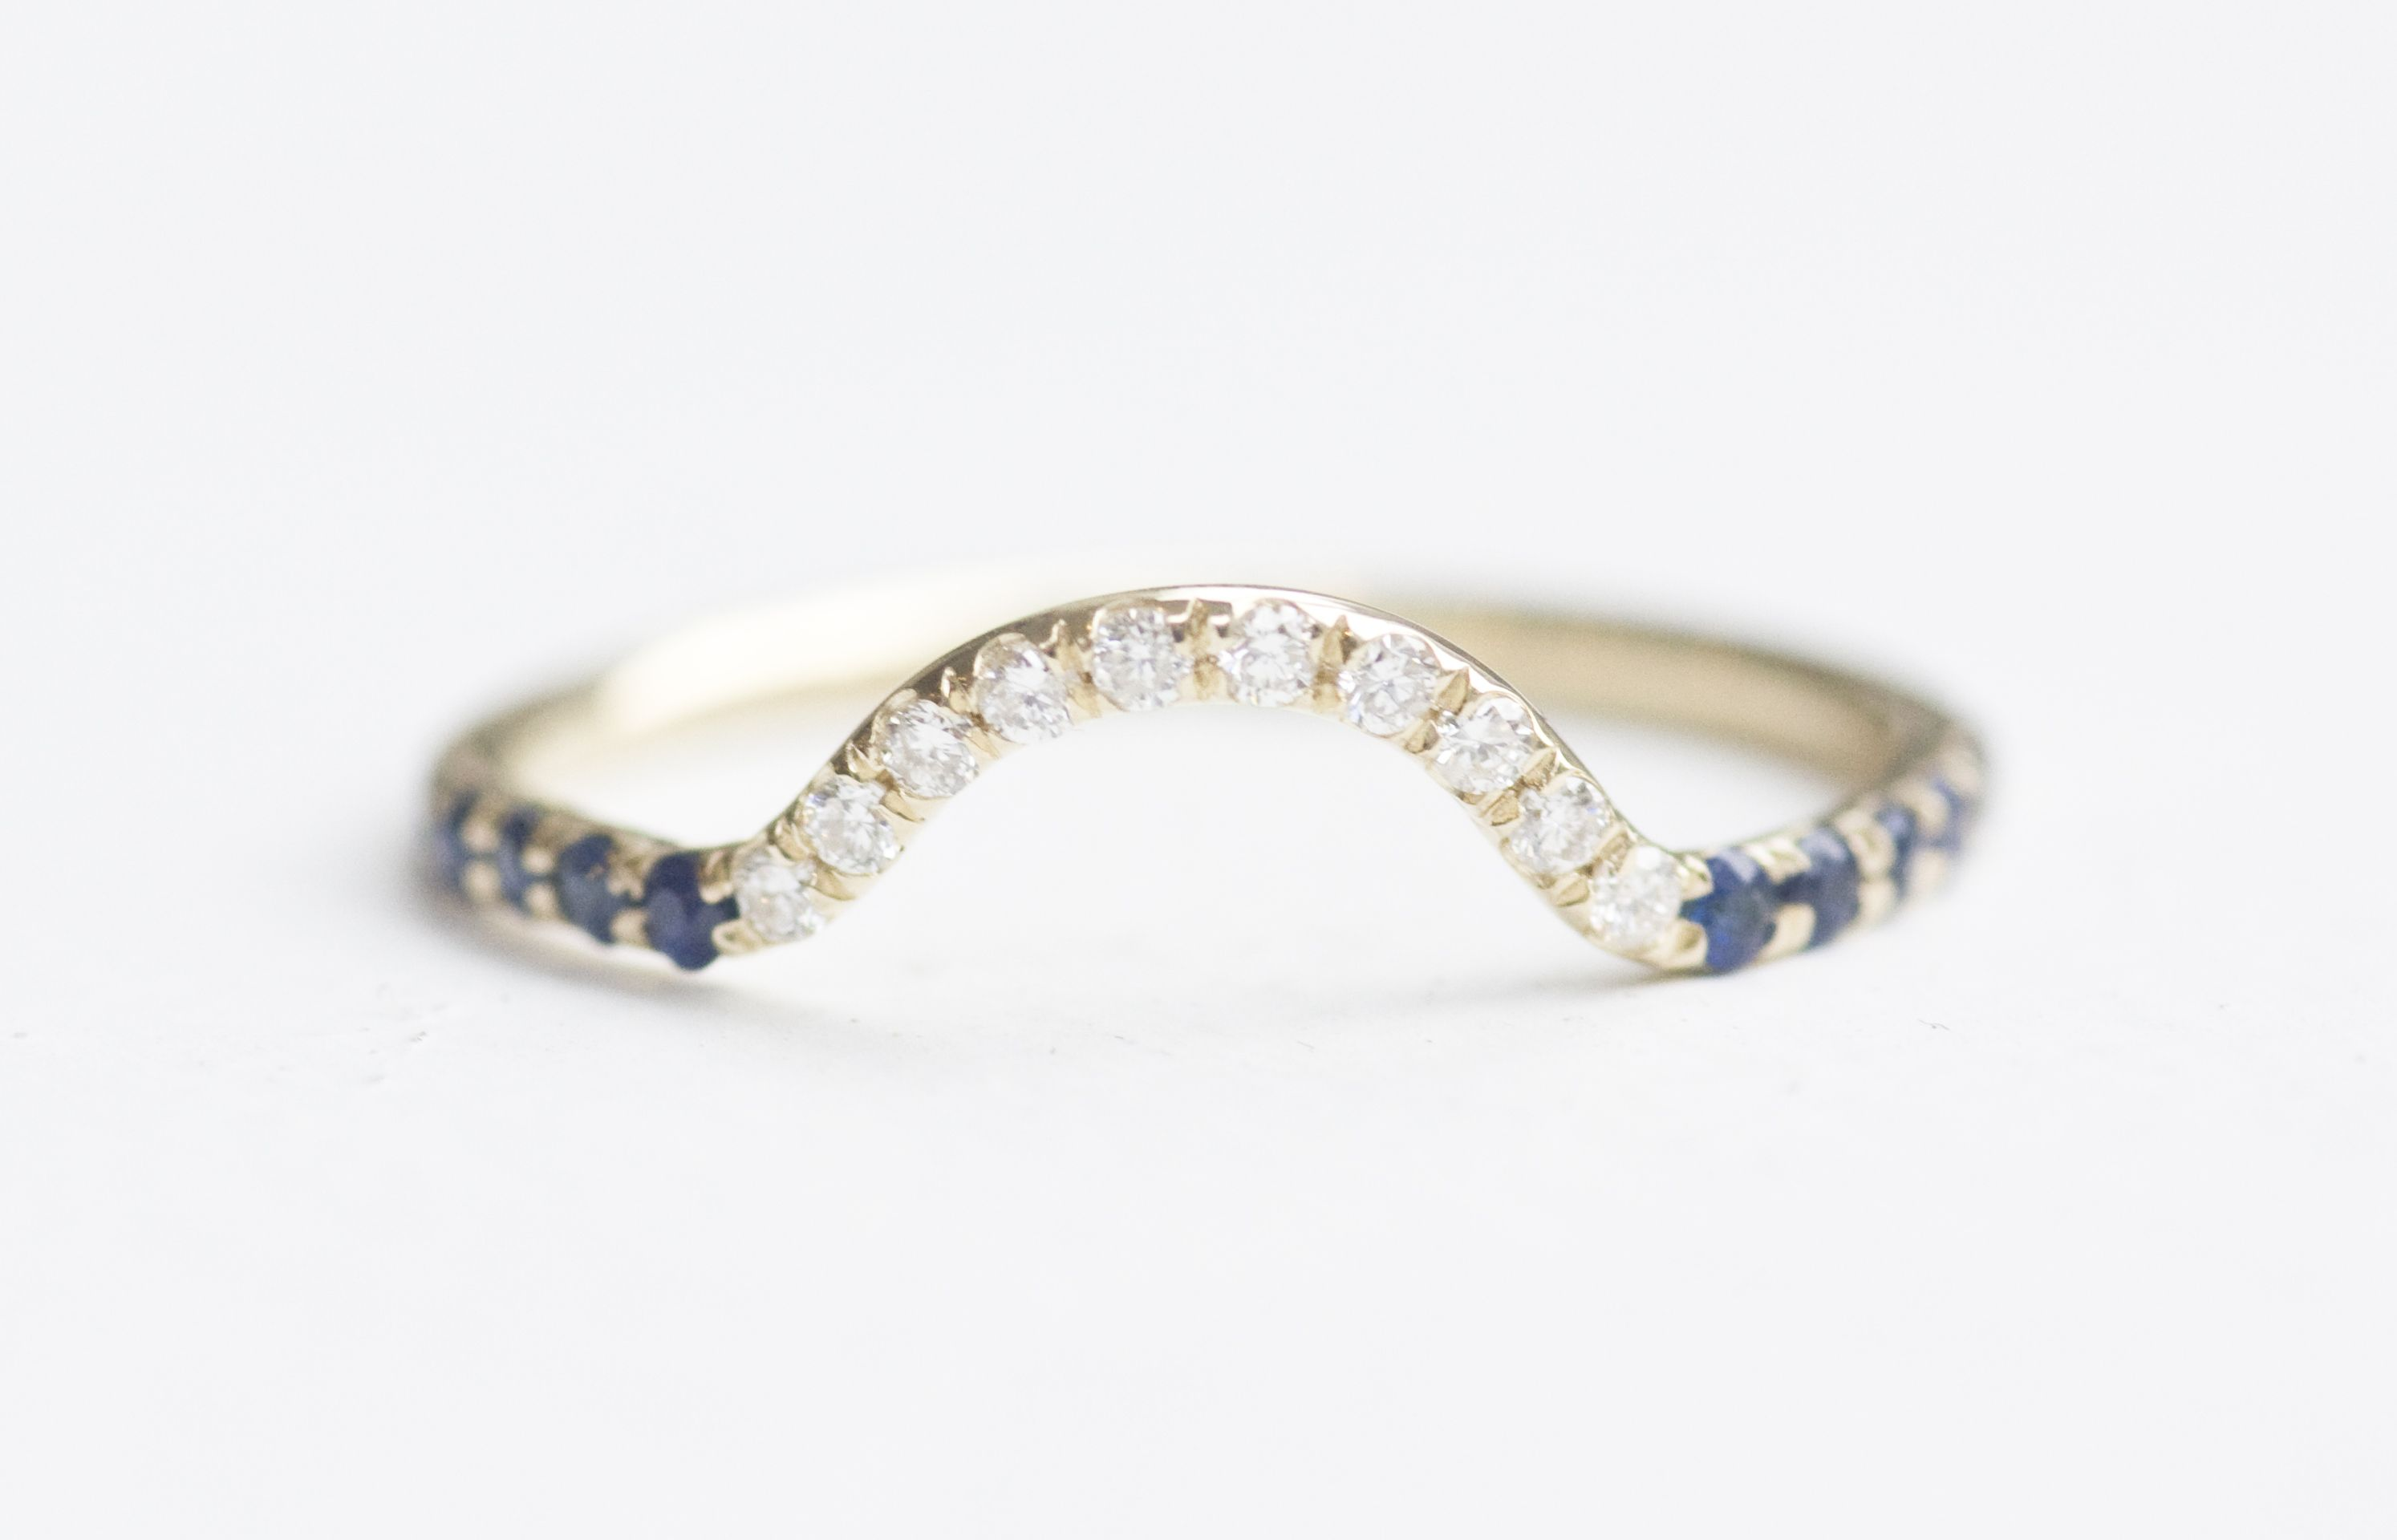 designs gold ring band sarah diamond white blue wedding hearts with dainty sapphire product bands laurie thin